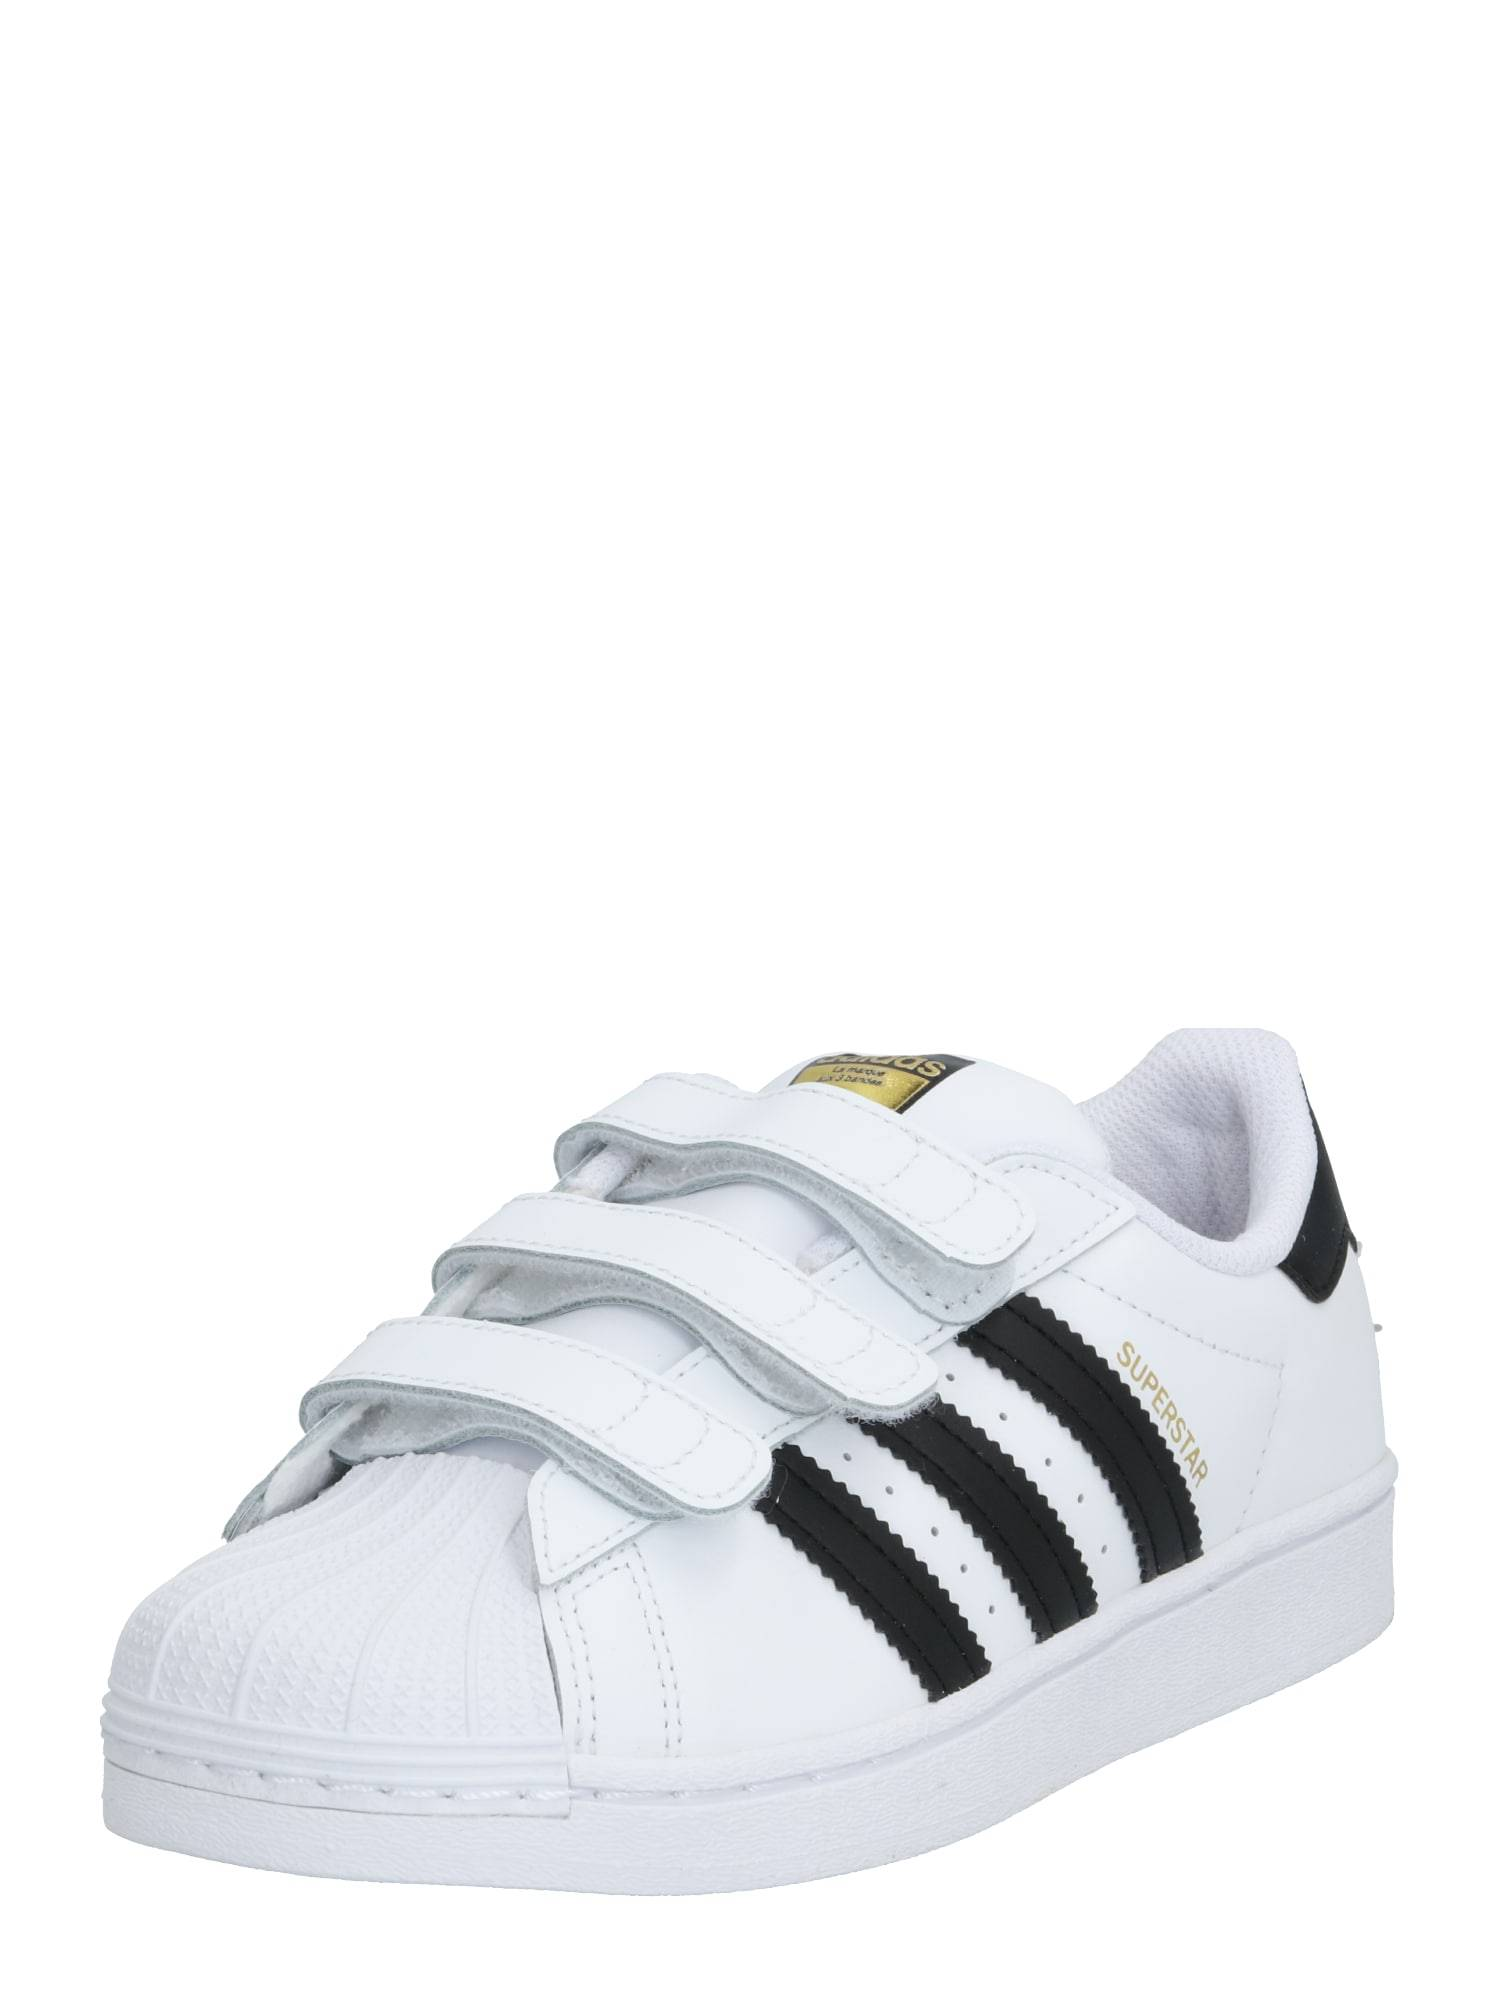 ADIDAS ORIGINALS Baskets 'Superstar'  - Blanc - Taille: 2.5 - boy